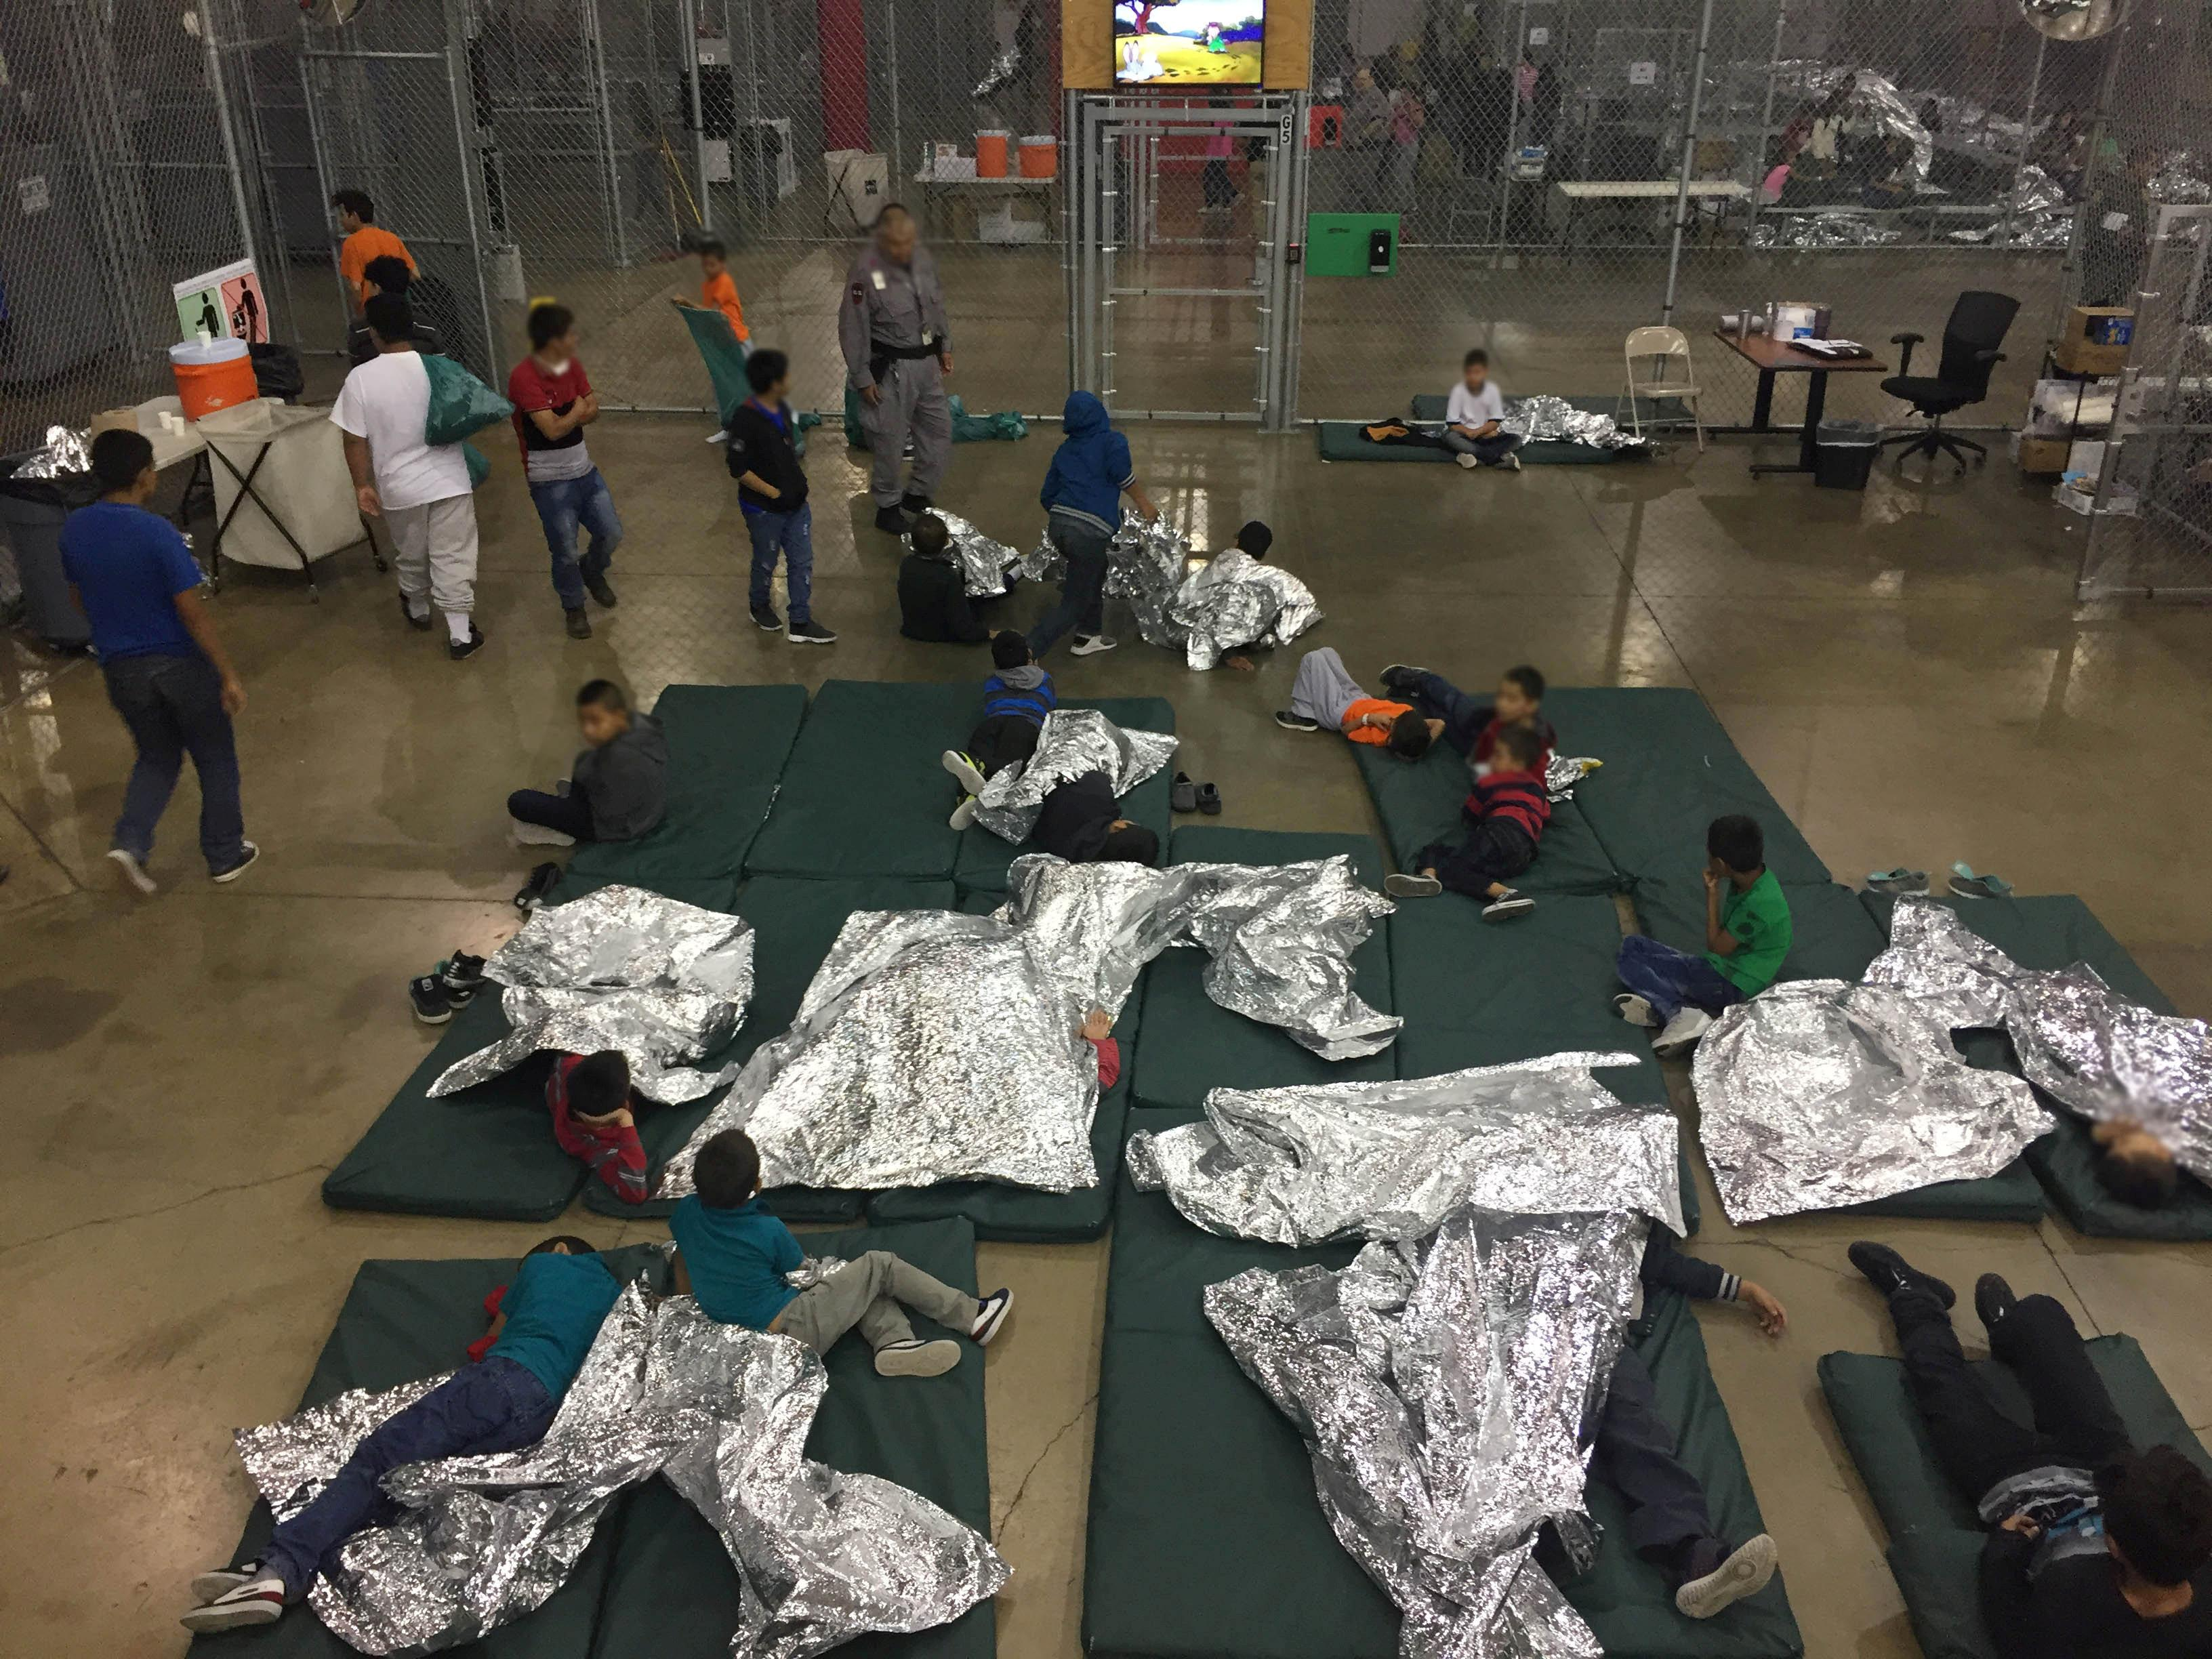 A view of inside U.S. Customs and Border Protection (CBP) detention facility shows children at Rio Grande Valley Centralized Processing Center in Rio Grande City, Texas, U.S., June 17, 2018.   Courtesy CBP/Handout via